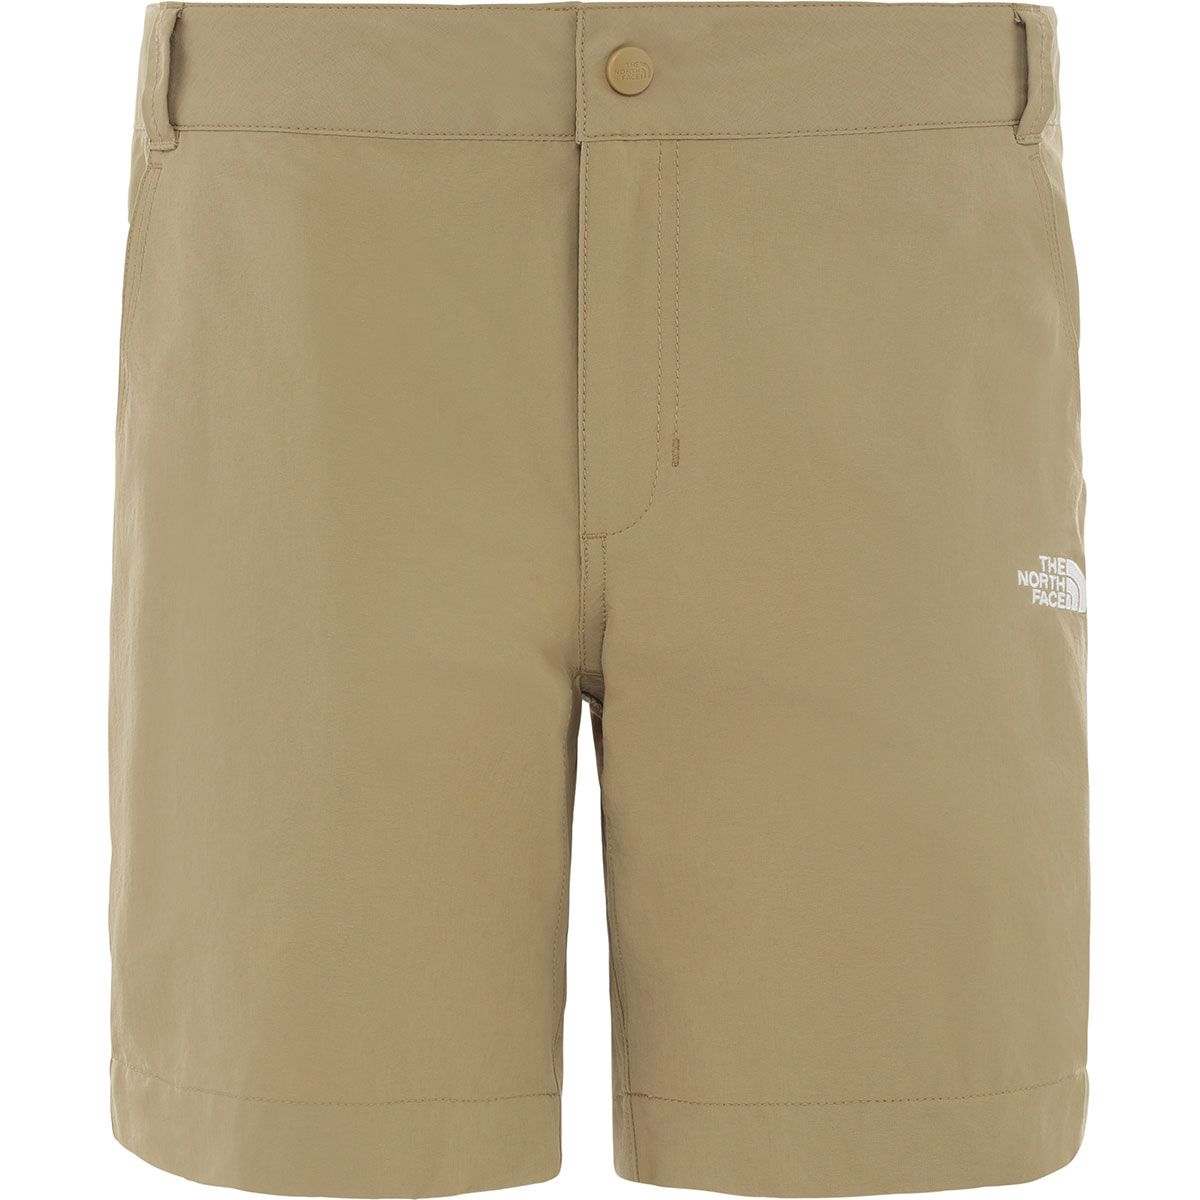 The North Face shorts